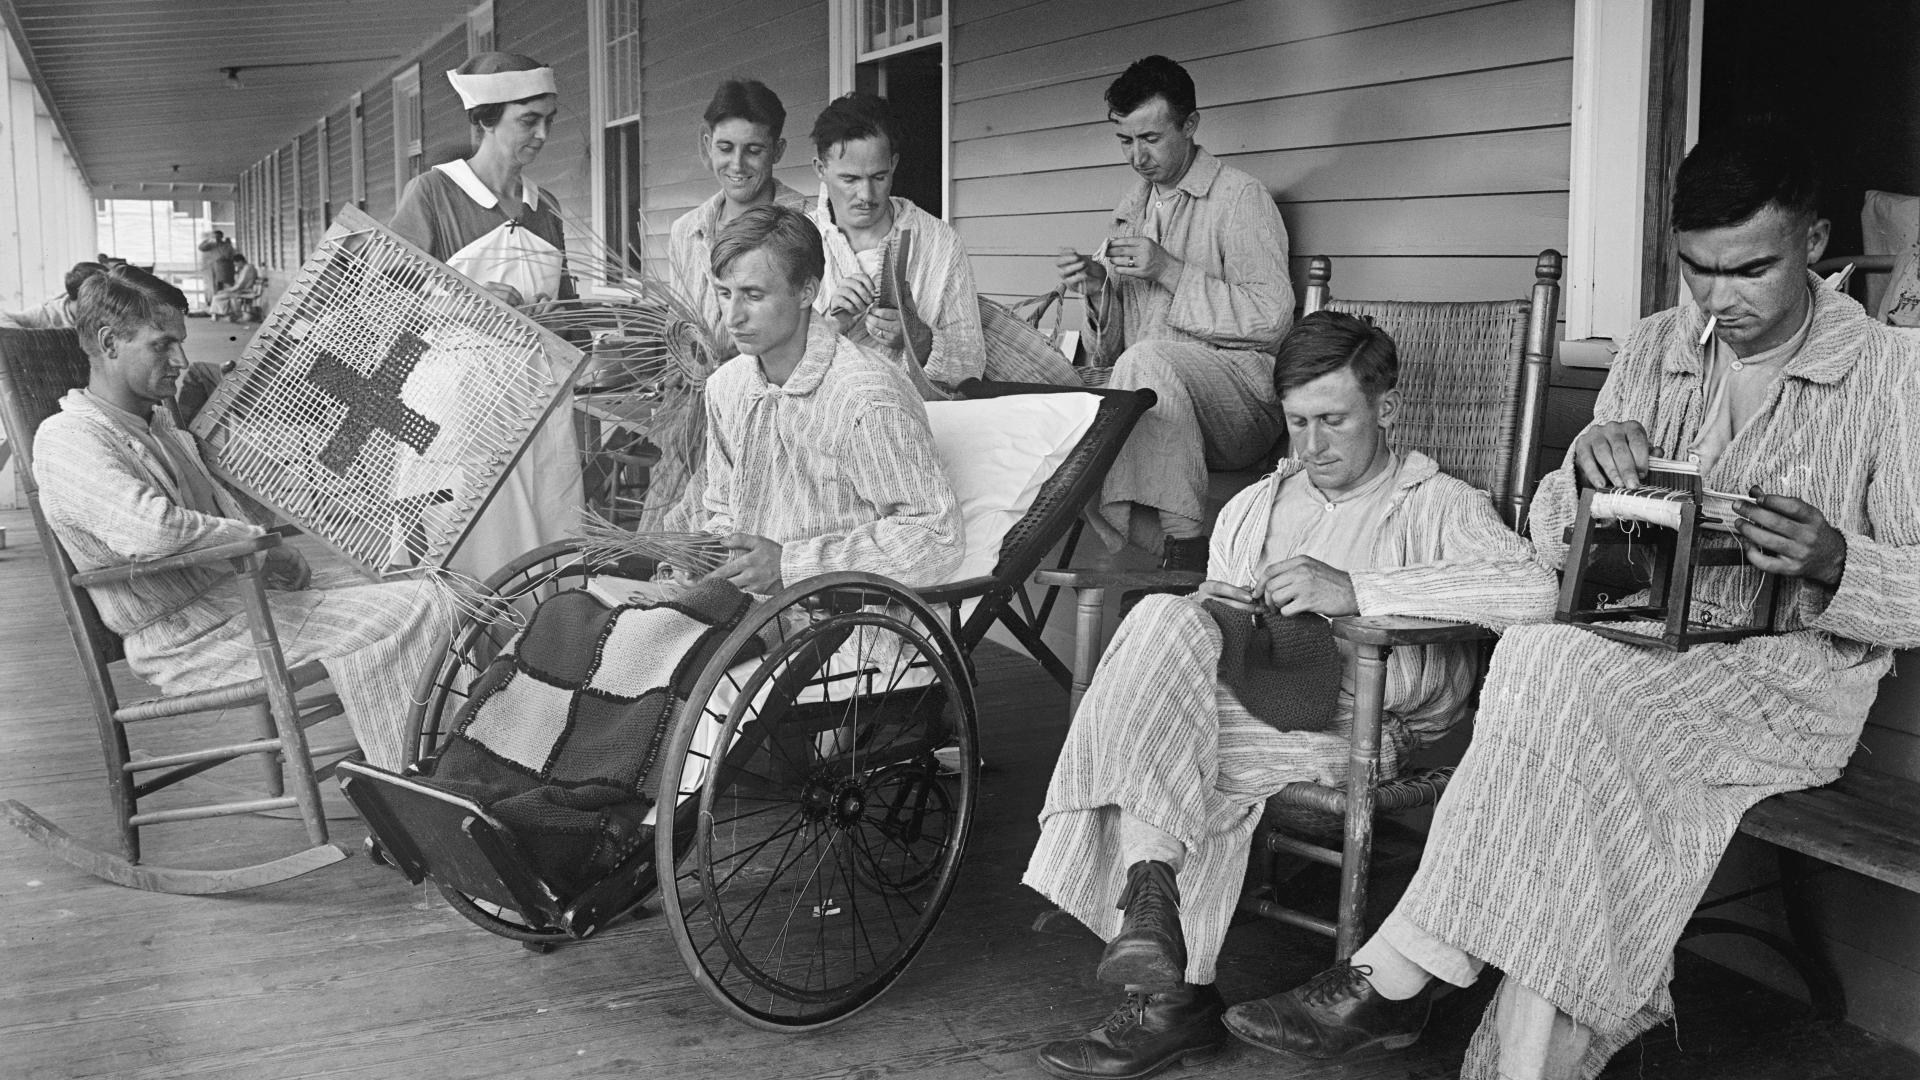 Injured soldiers at Walter Reed General Hospital in Washington, D.C.1918. (Credit: GHI/Universal History Archive/Getty Images)